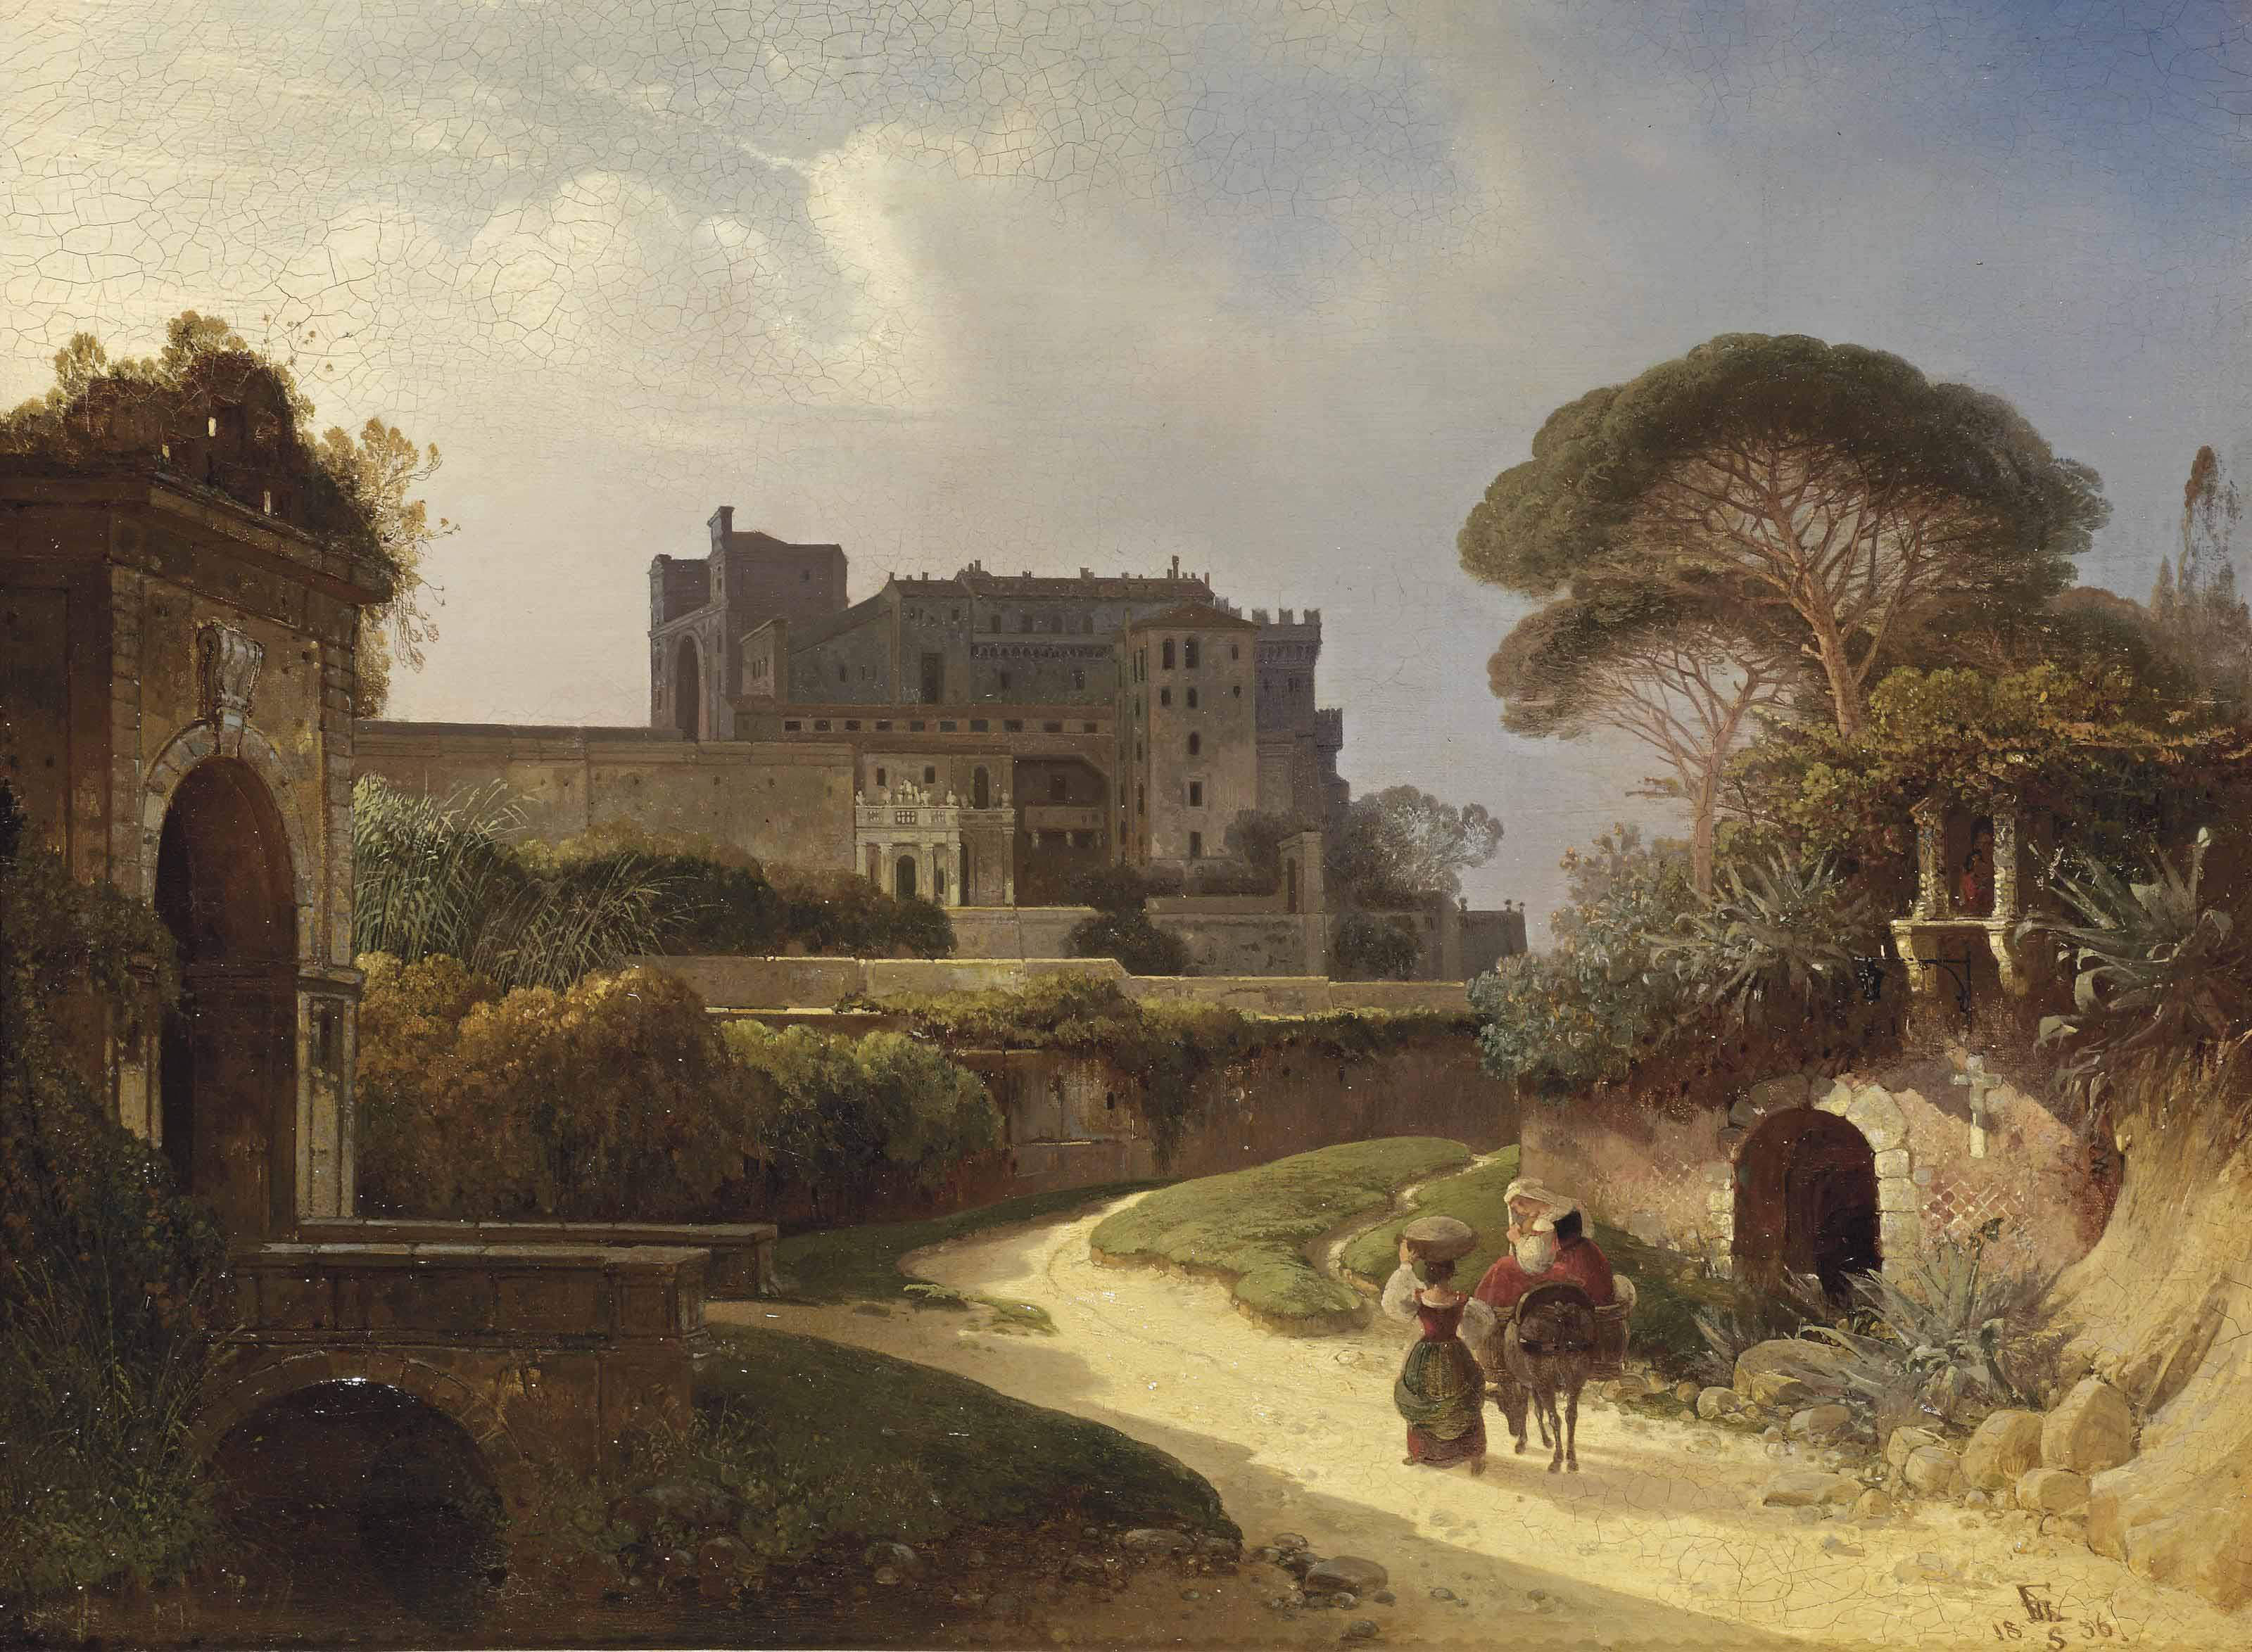 A veduta of an Italian castello and gardens